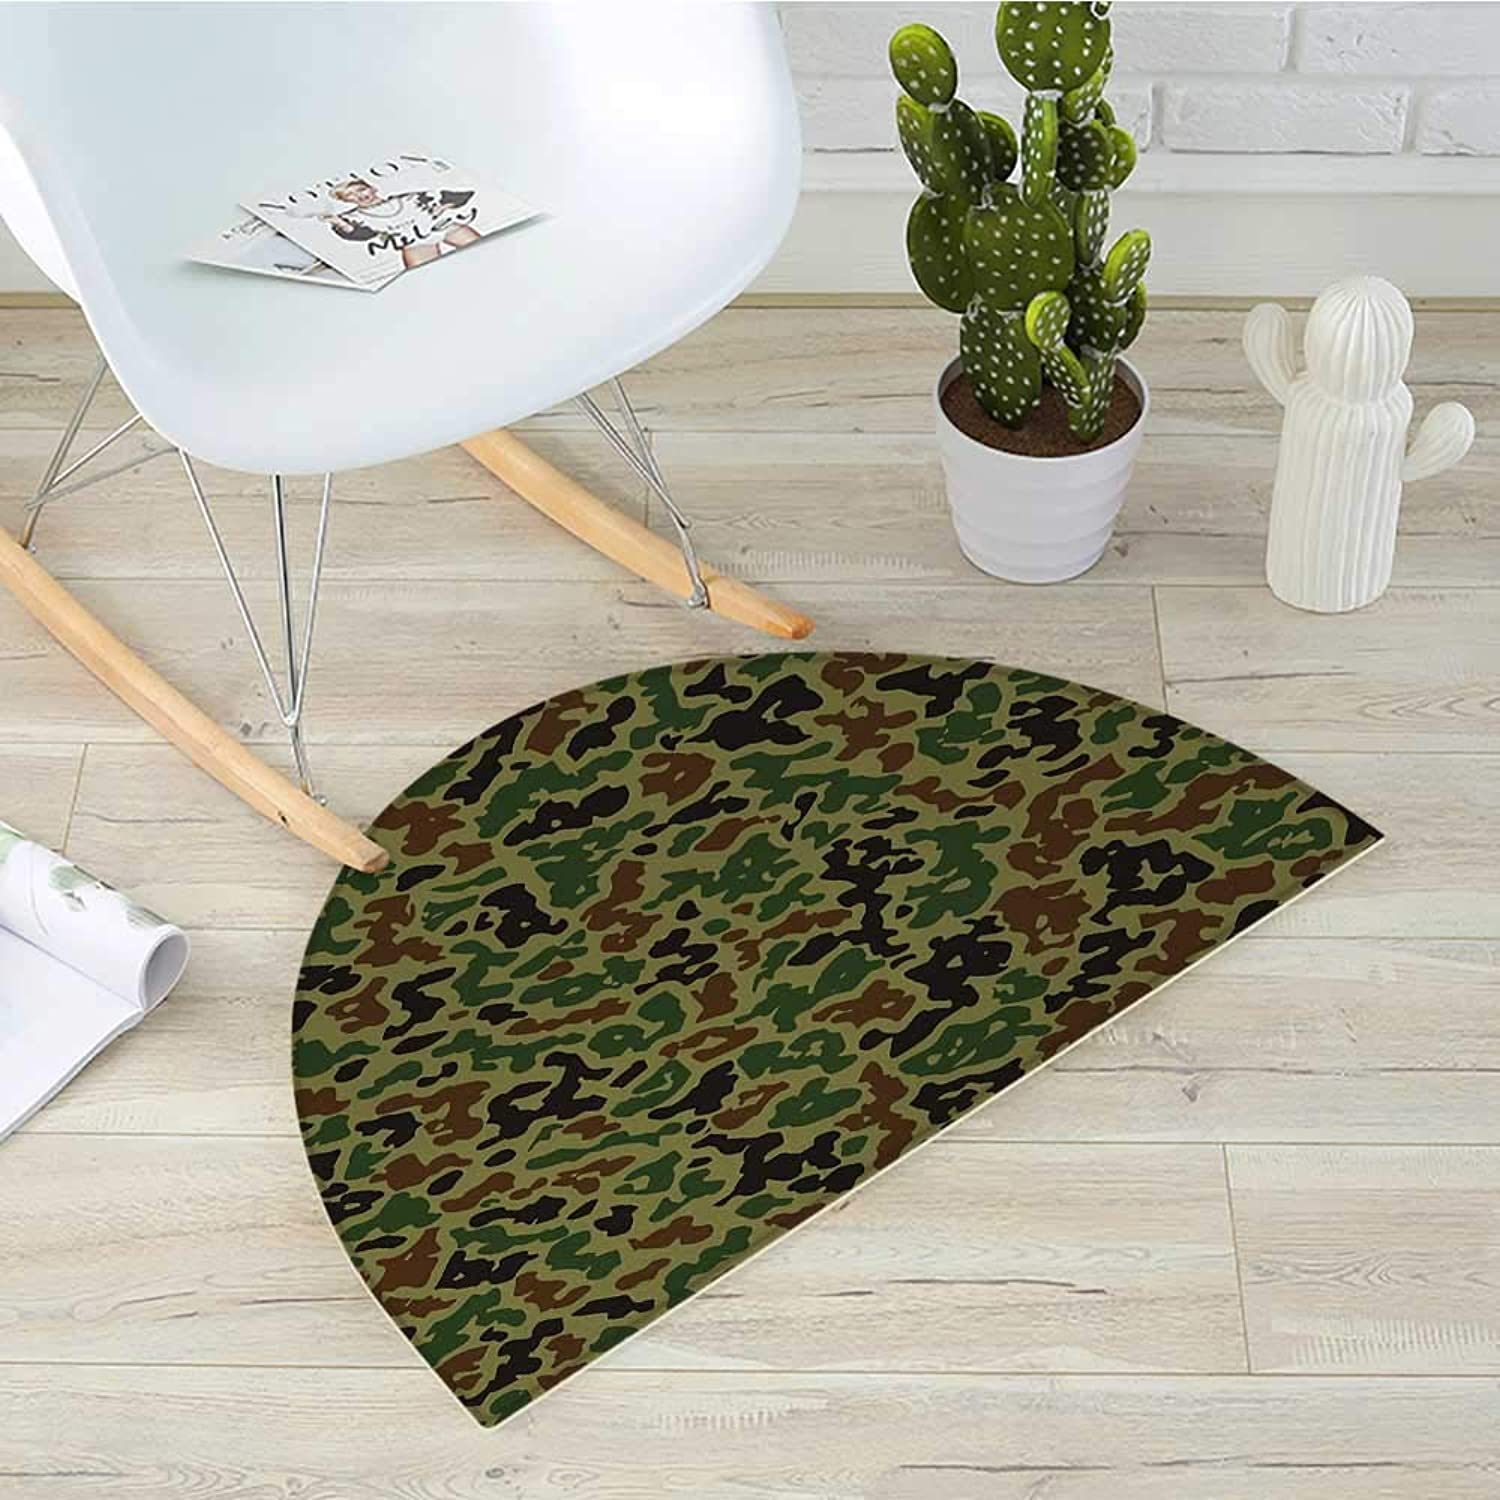 Camo Semicircular CushionSummer Camouflage Pattern Grungy Texture Hidden in Jungle Retro Style Print Entry Door Mat H 35.4  xD 53.1  Khaki Green Brown